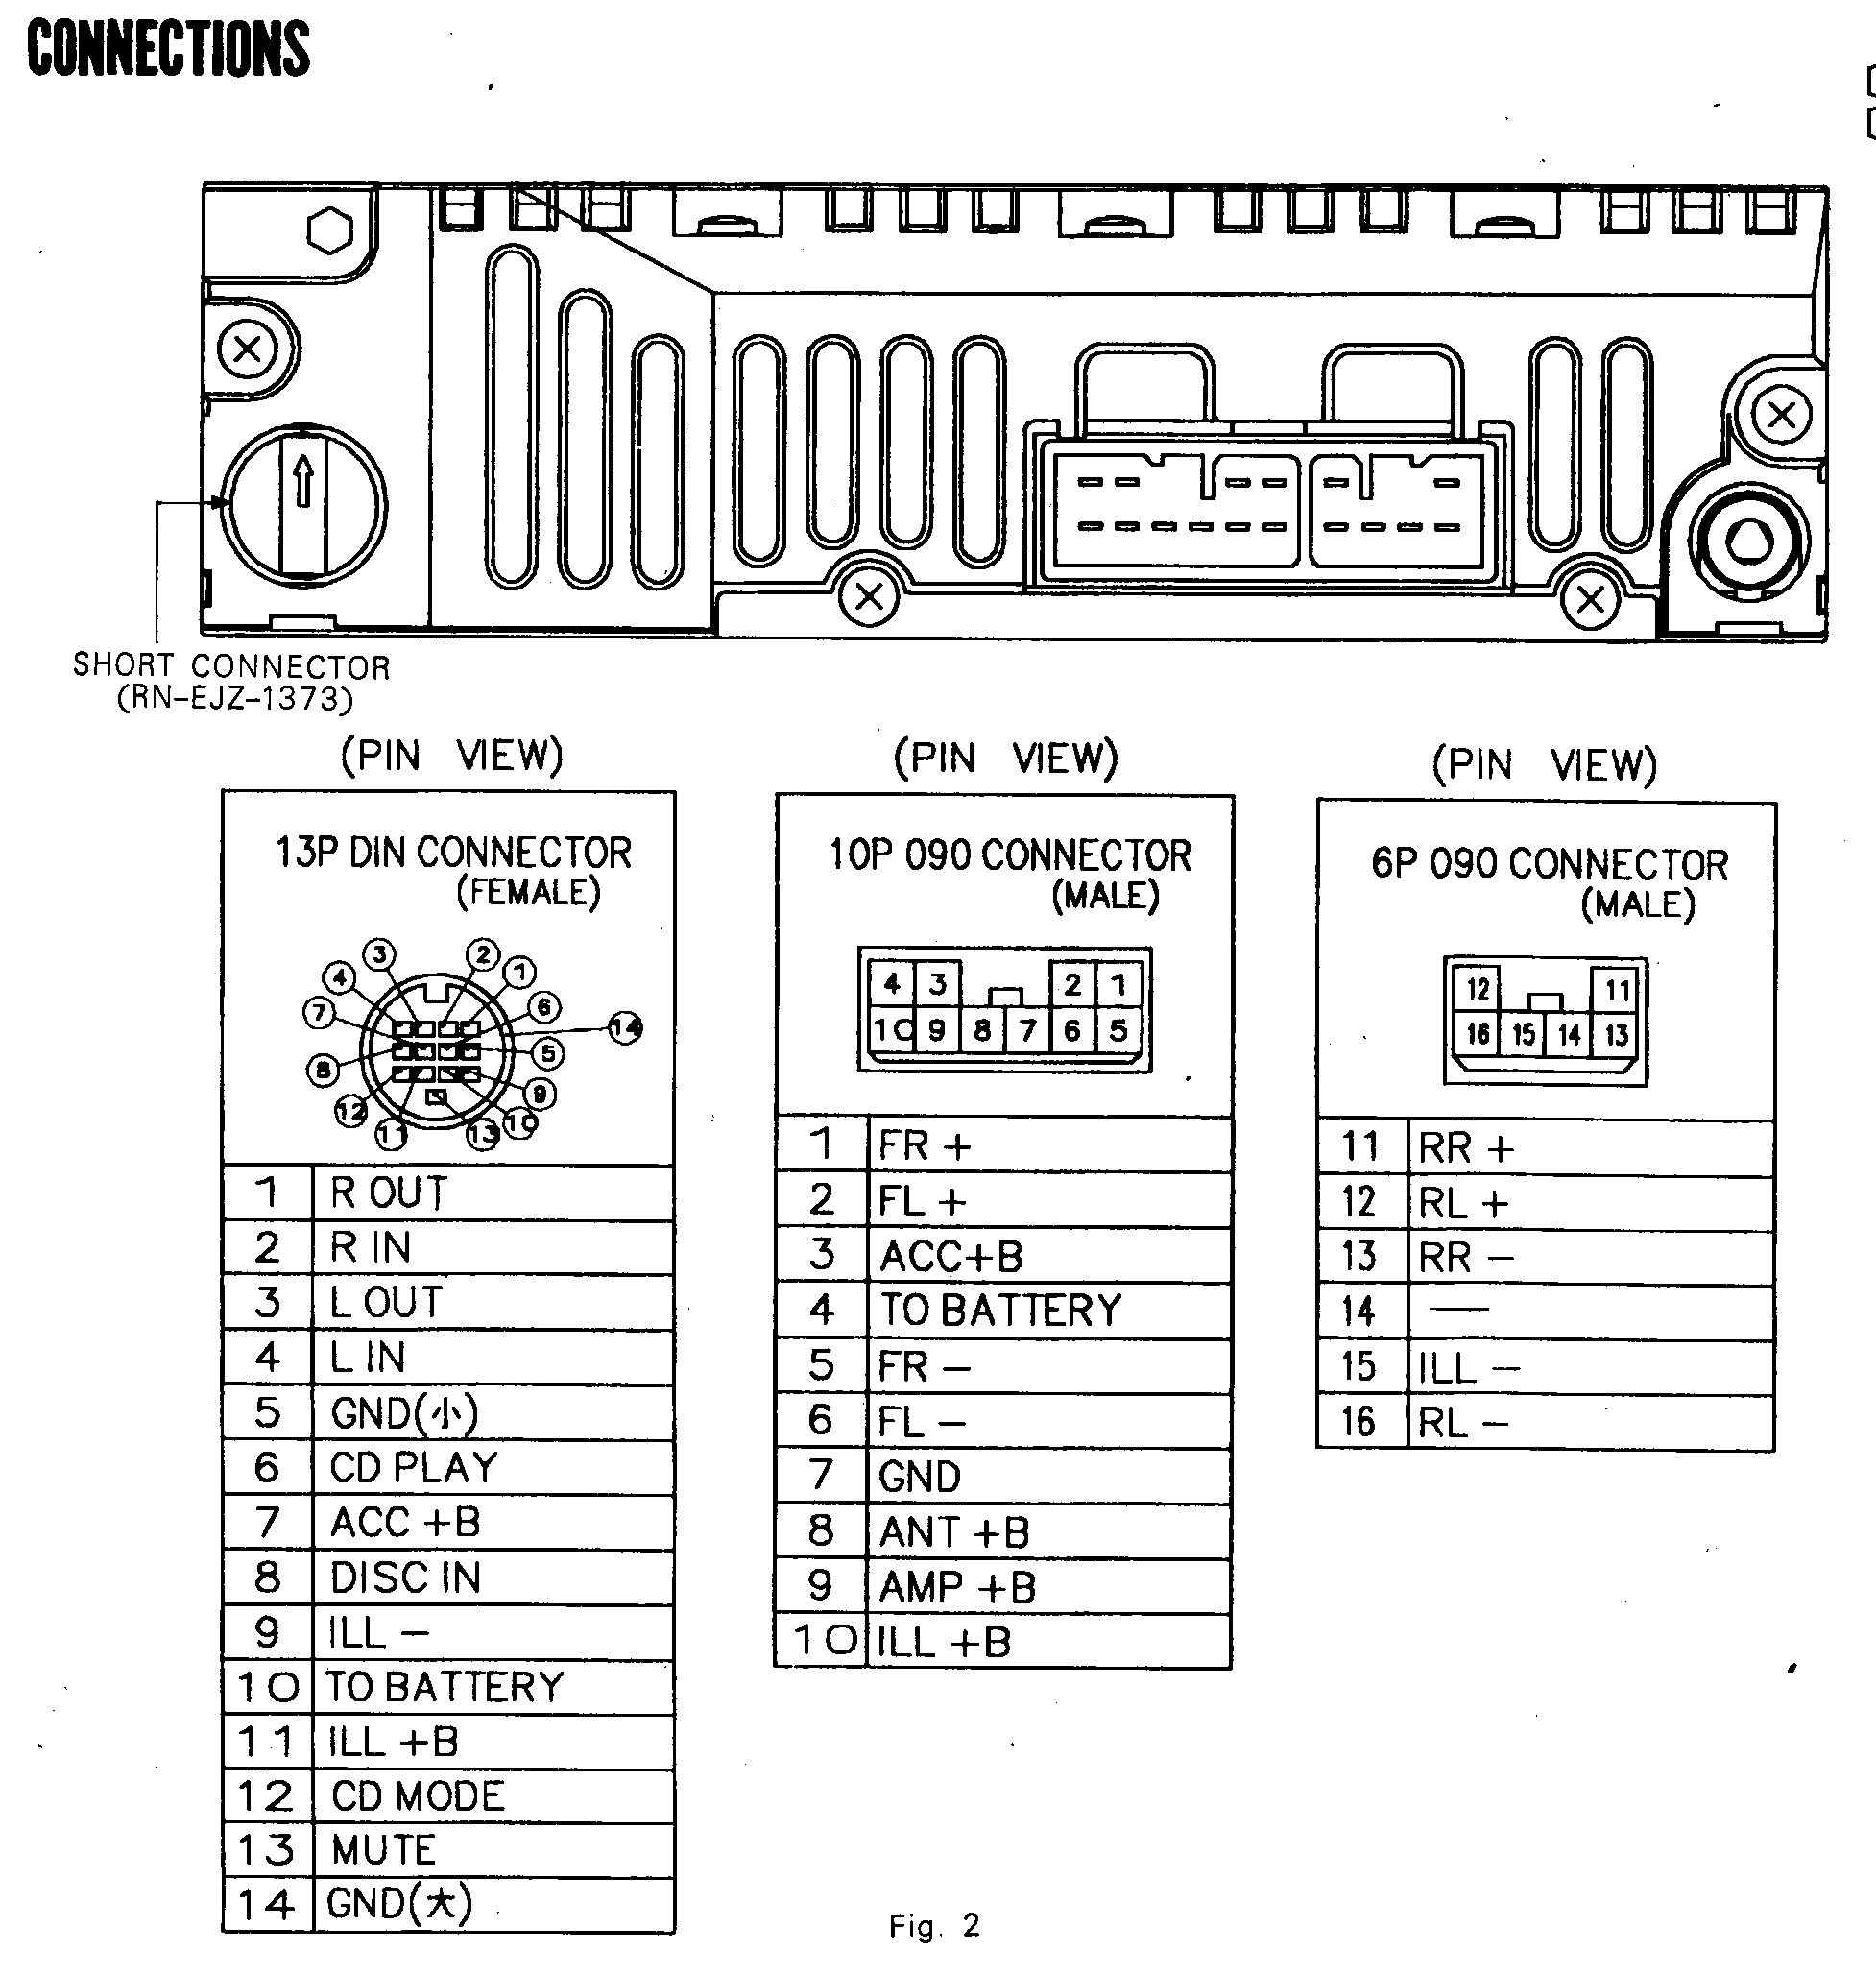 Old Toyota Stereo Wiring - Wiring Diagram Detailed on smart car seats, smart car valves, smart car starter, smart car belt diagram, smart car sub box, smart car fuse diagram, smart car engine diagram, smart car manual, smart car horn, smart car electrical, smart car ignition, smart car jacking points, smart car schematics, smart car speaker, smart car blower fan, smart car hose, smart car carburetor, smart car assembly, smart car fuel tank, smart car service,